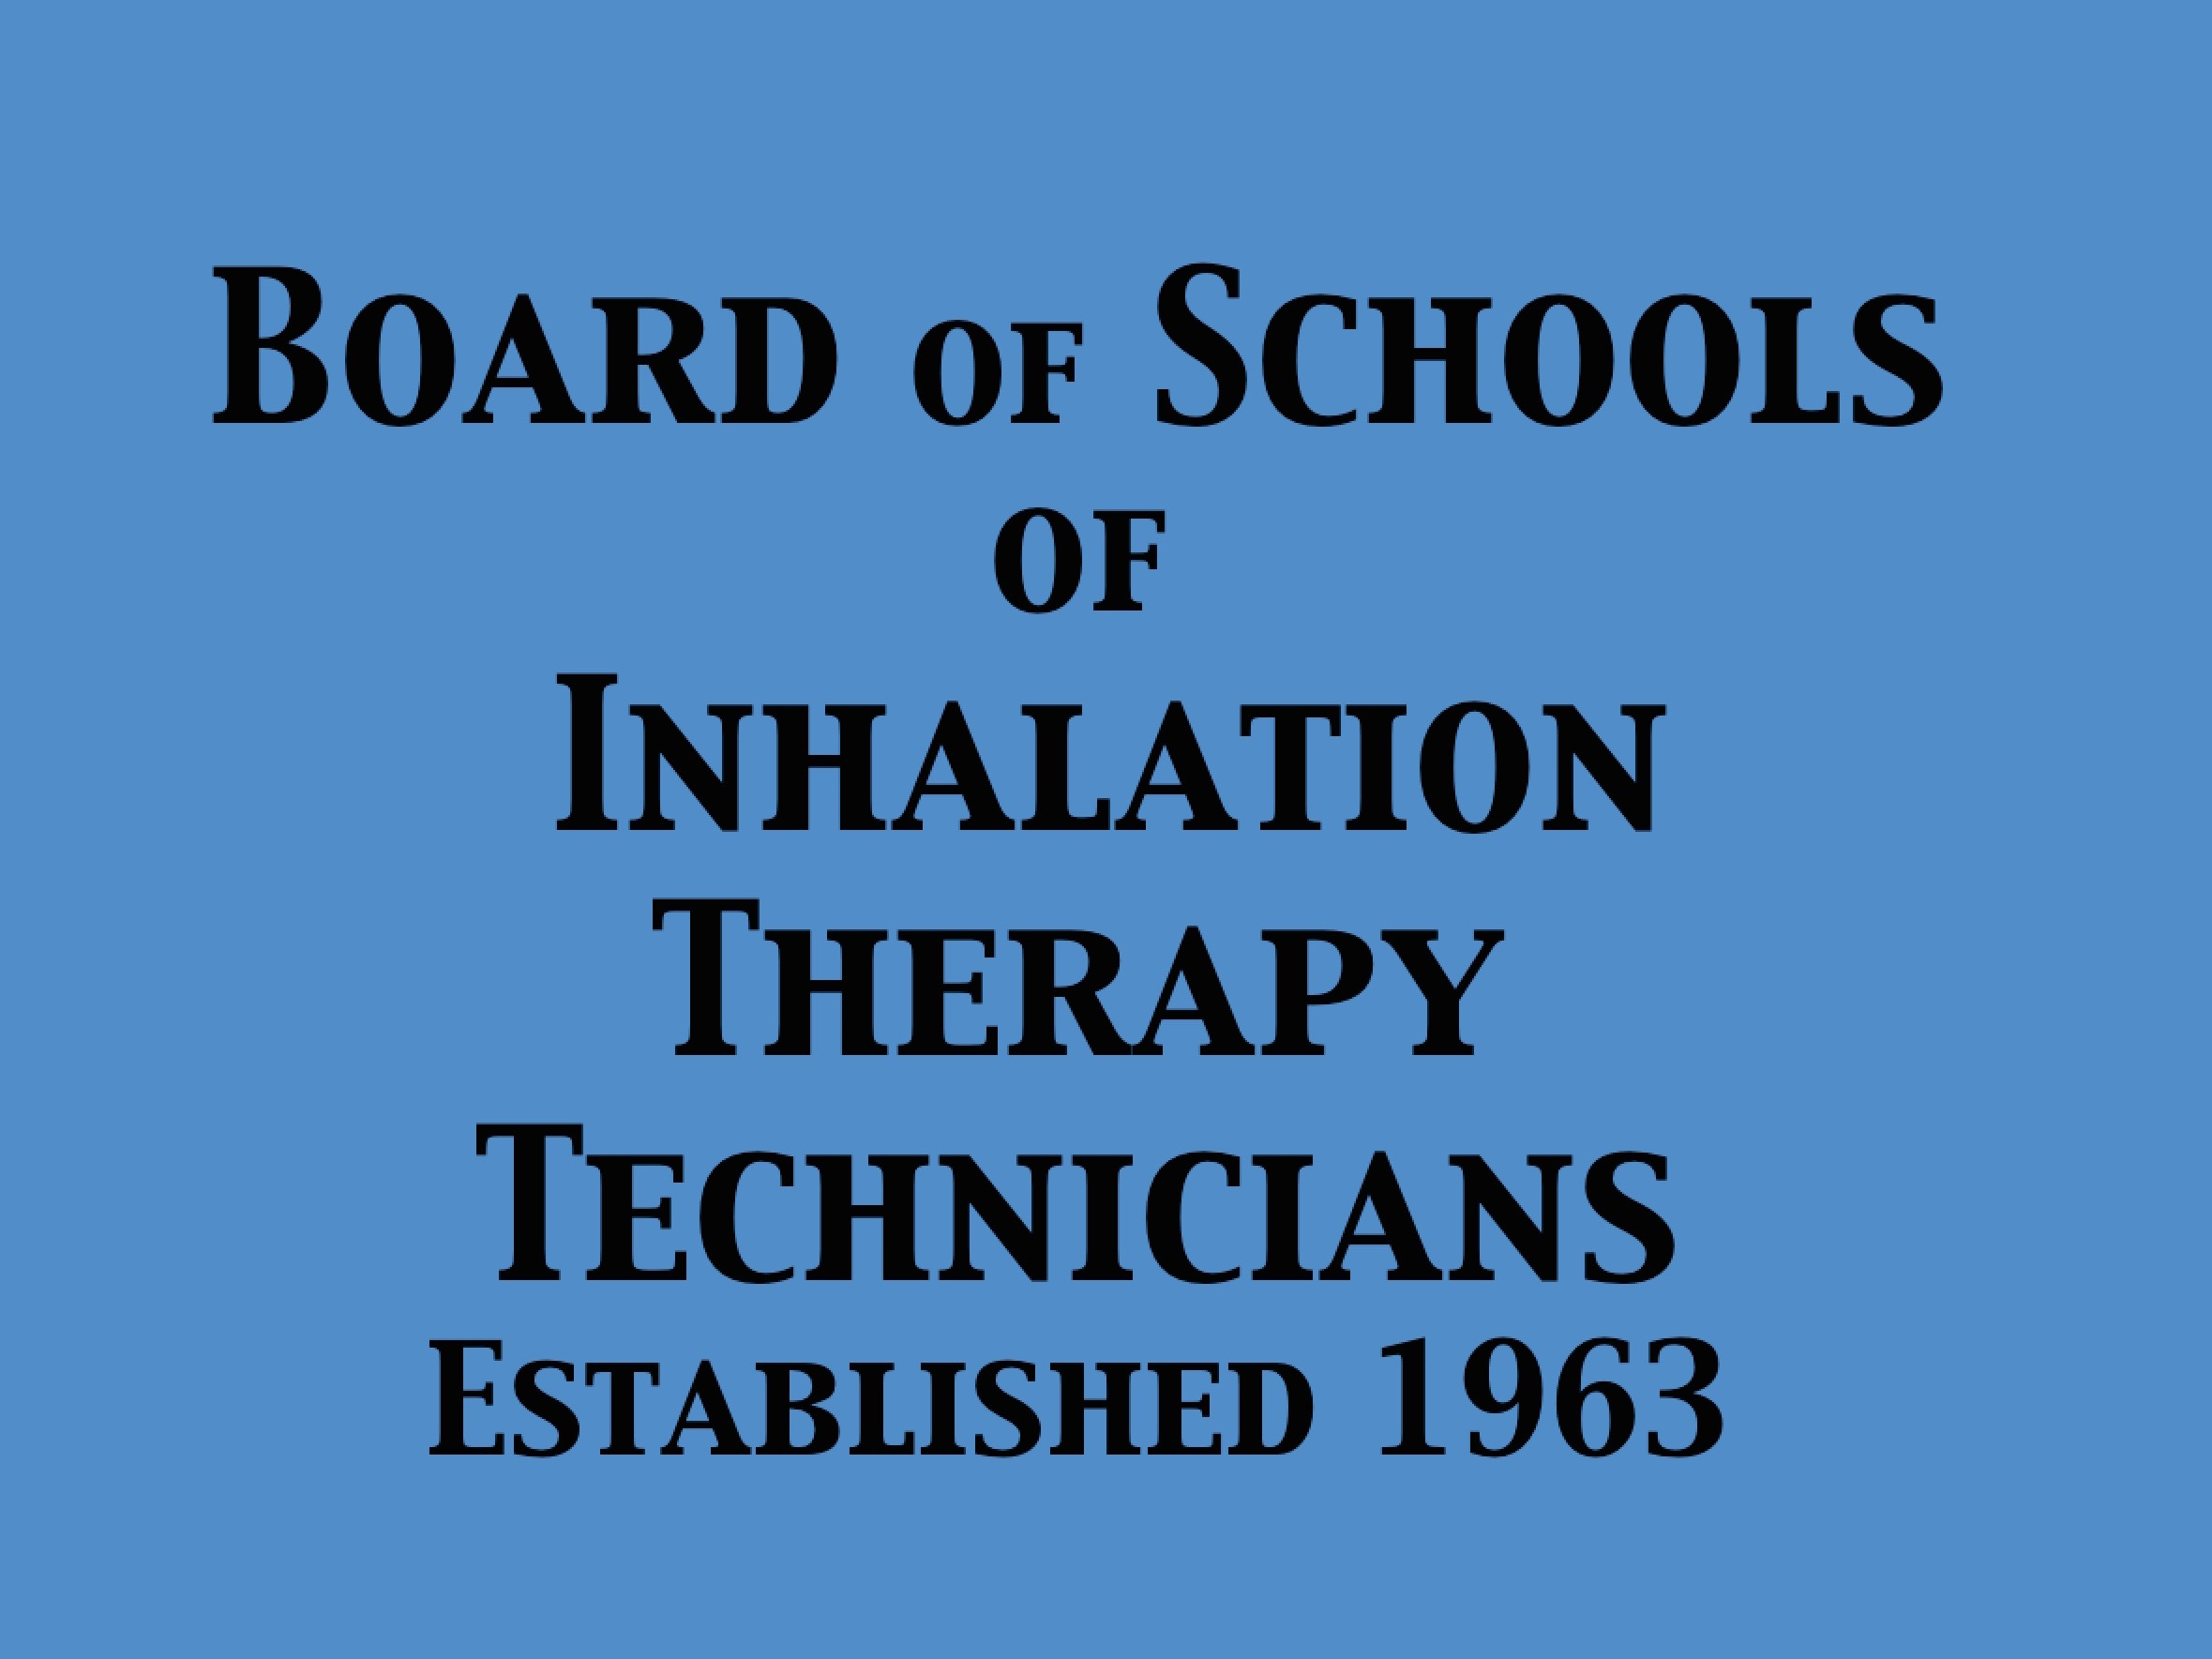 1963 Board of Schools Formed